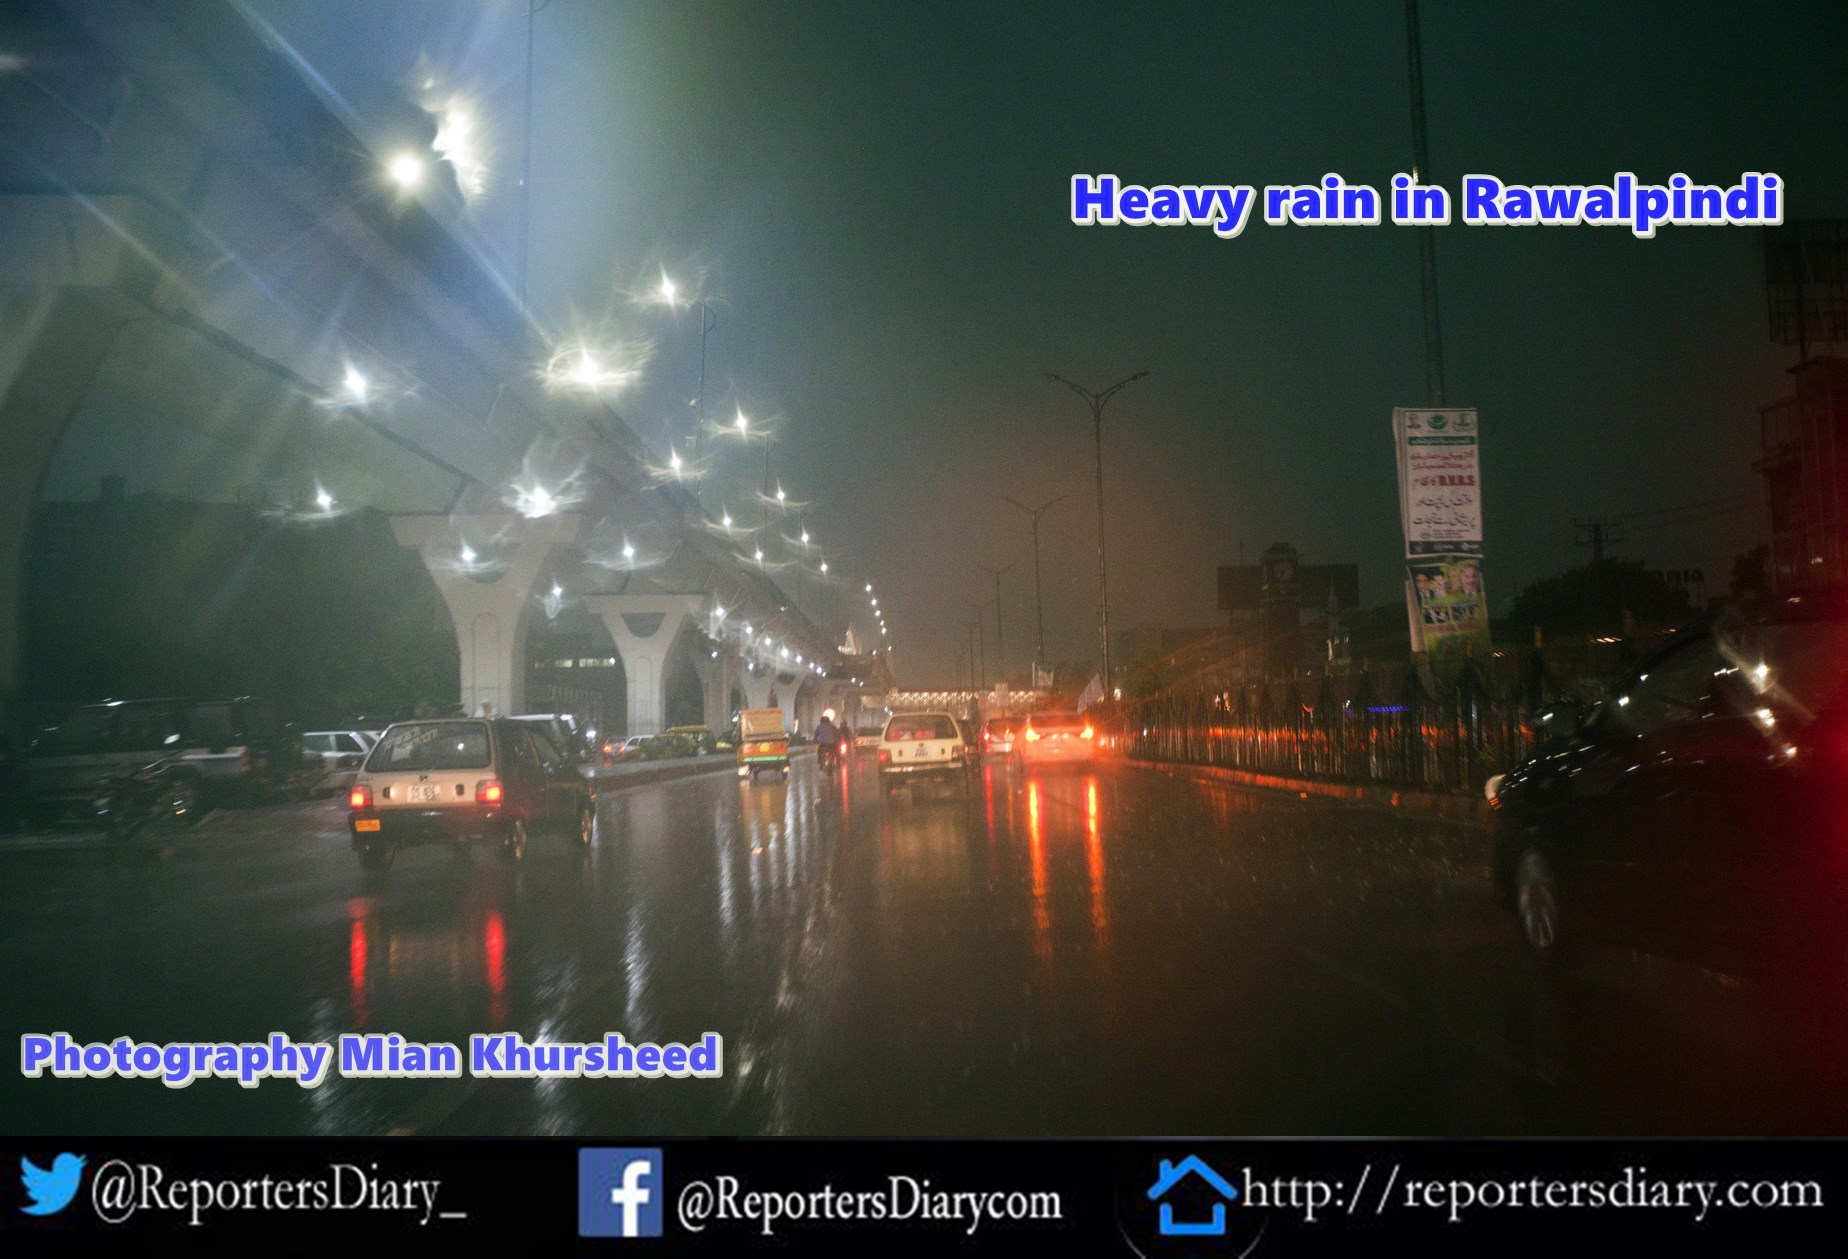 Heavy rain in Rawalpindi